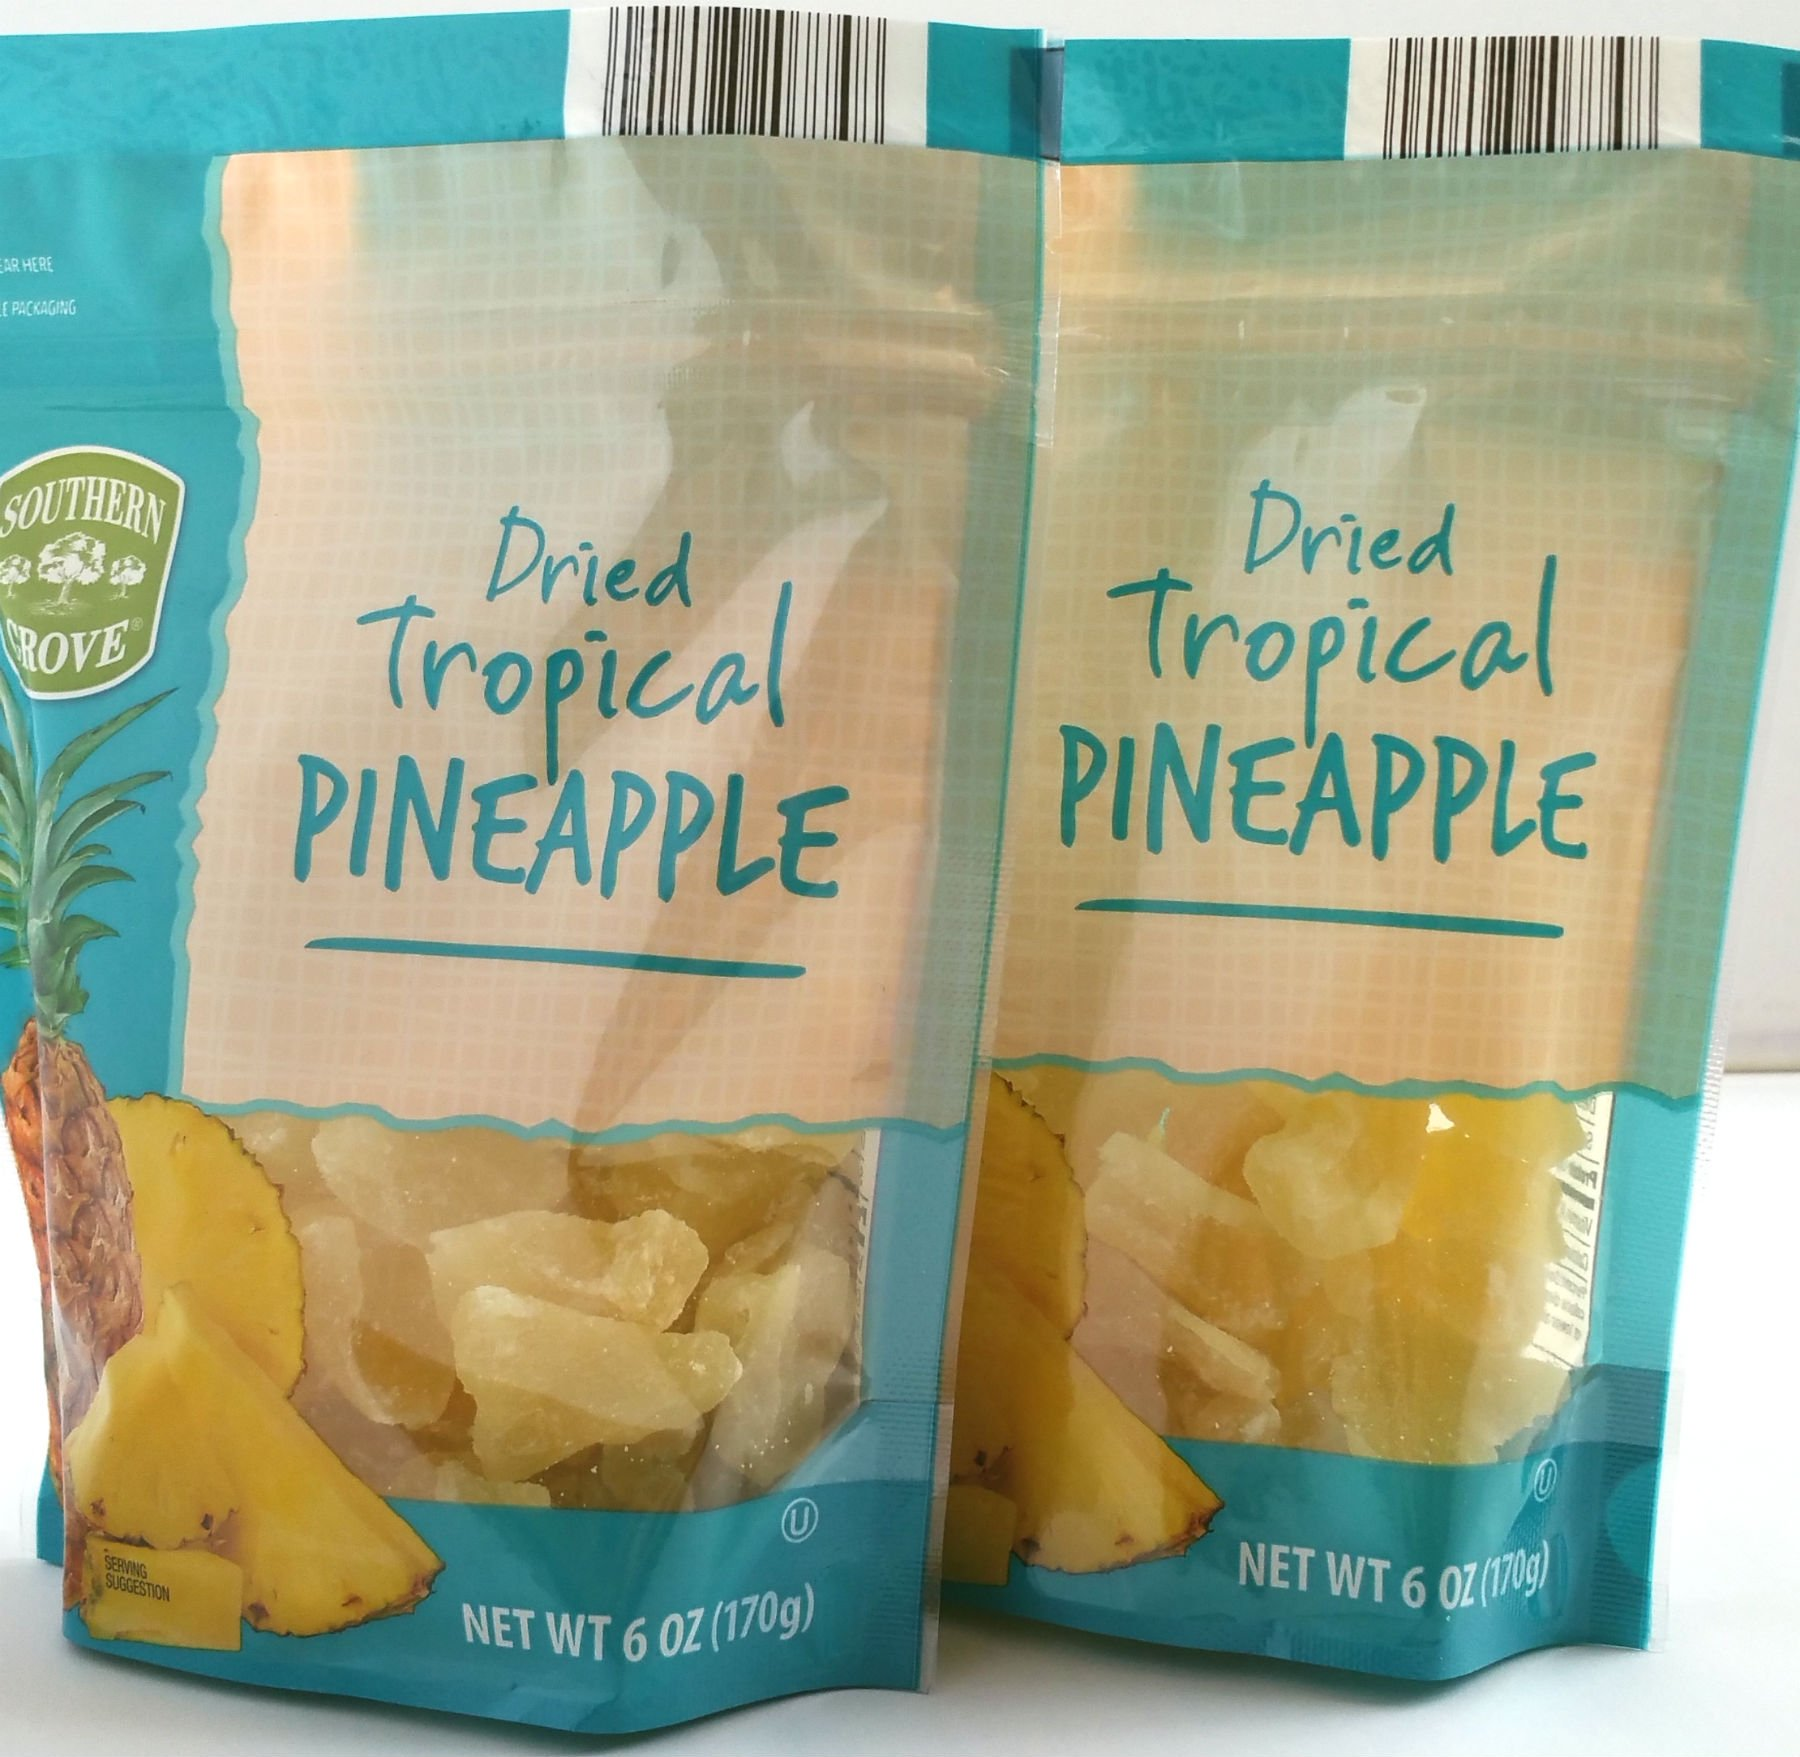 Southern Grove - Dried Tropical Pinapple - Net Wt. 6 Oz. (170g) - Two (2) Pack